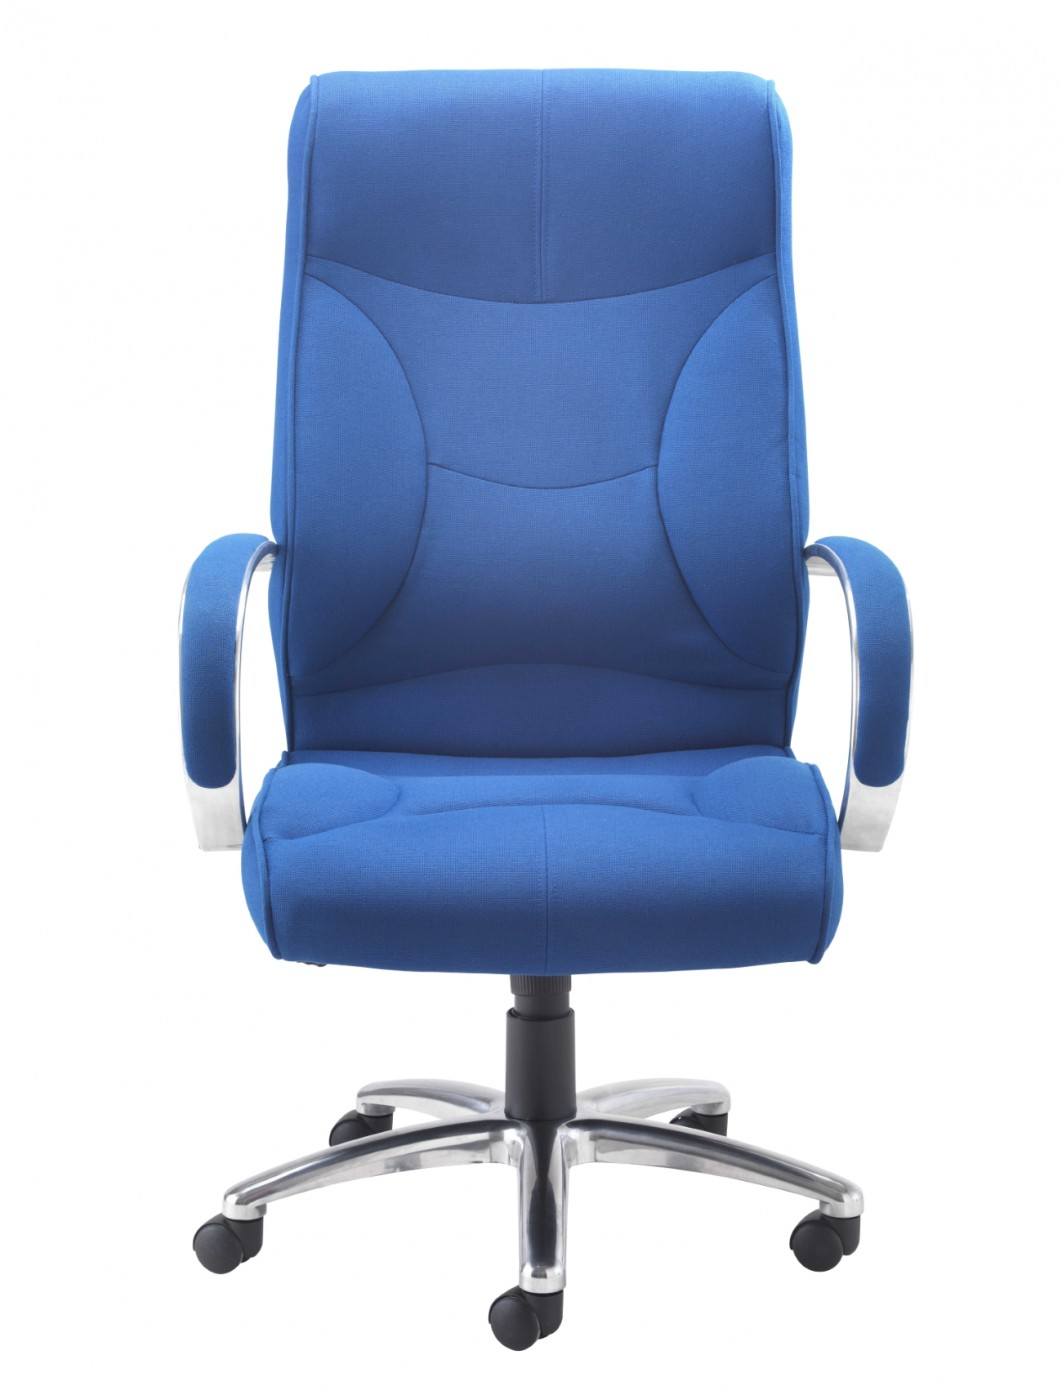 Office Chairs   TC Whist Executive Fabric Office Chair CH3206   Enlarged  View